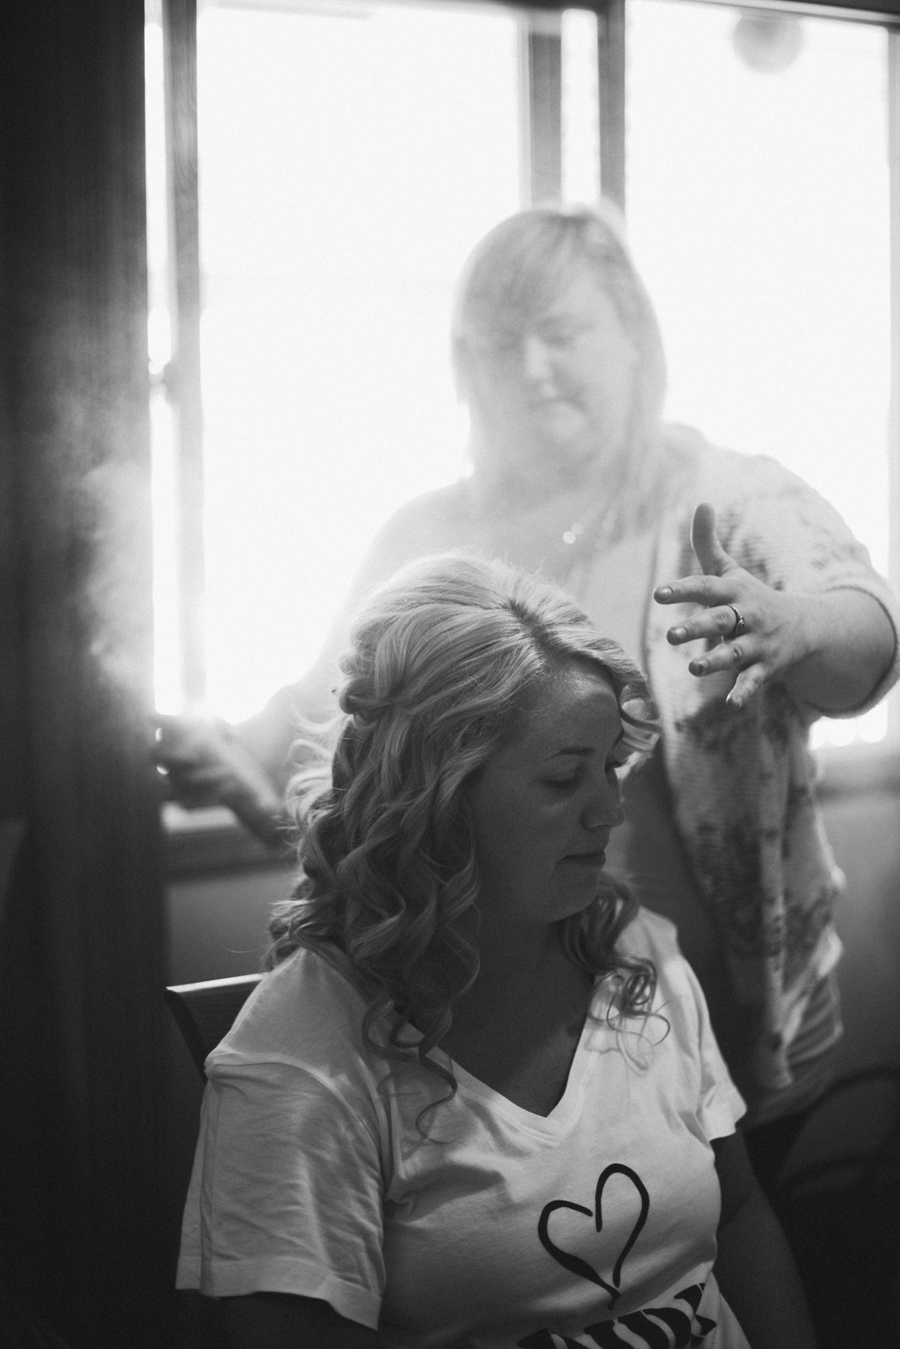 bbcollective_yeg_2016_ashleyandcraig_wedding_photography004.jpg